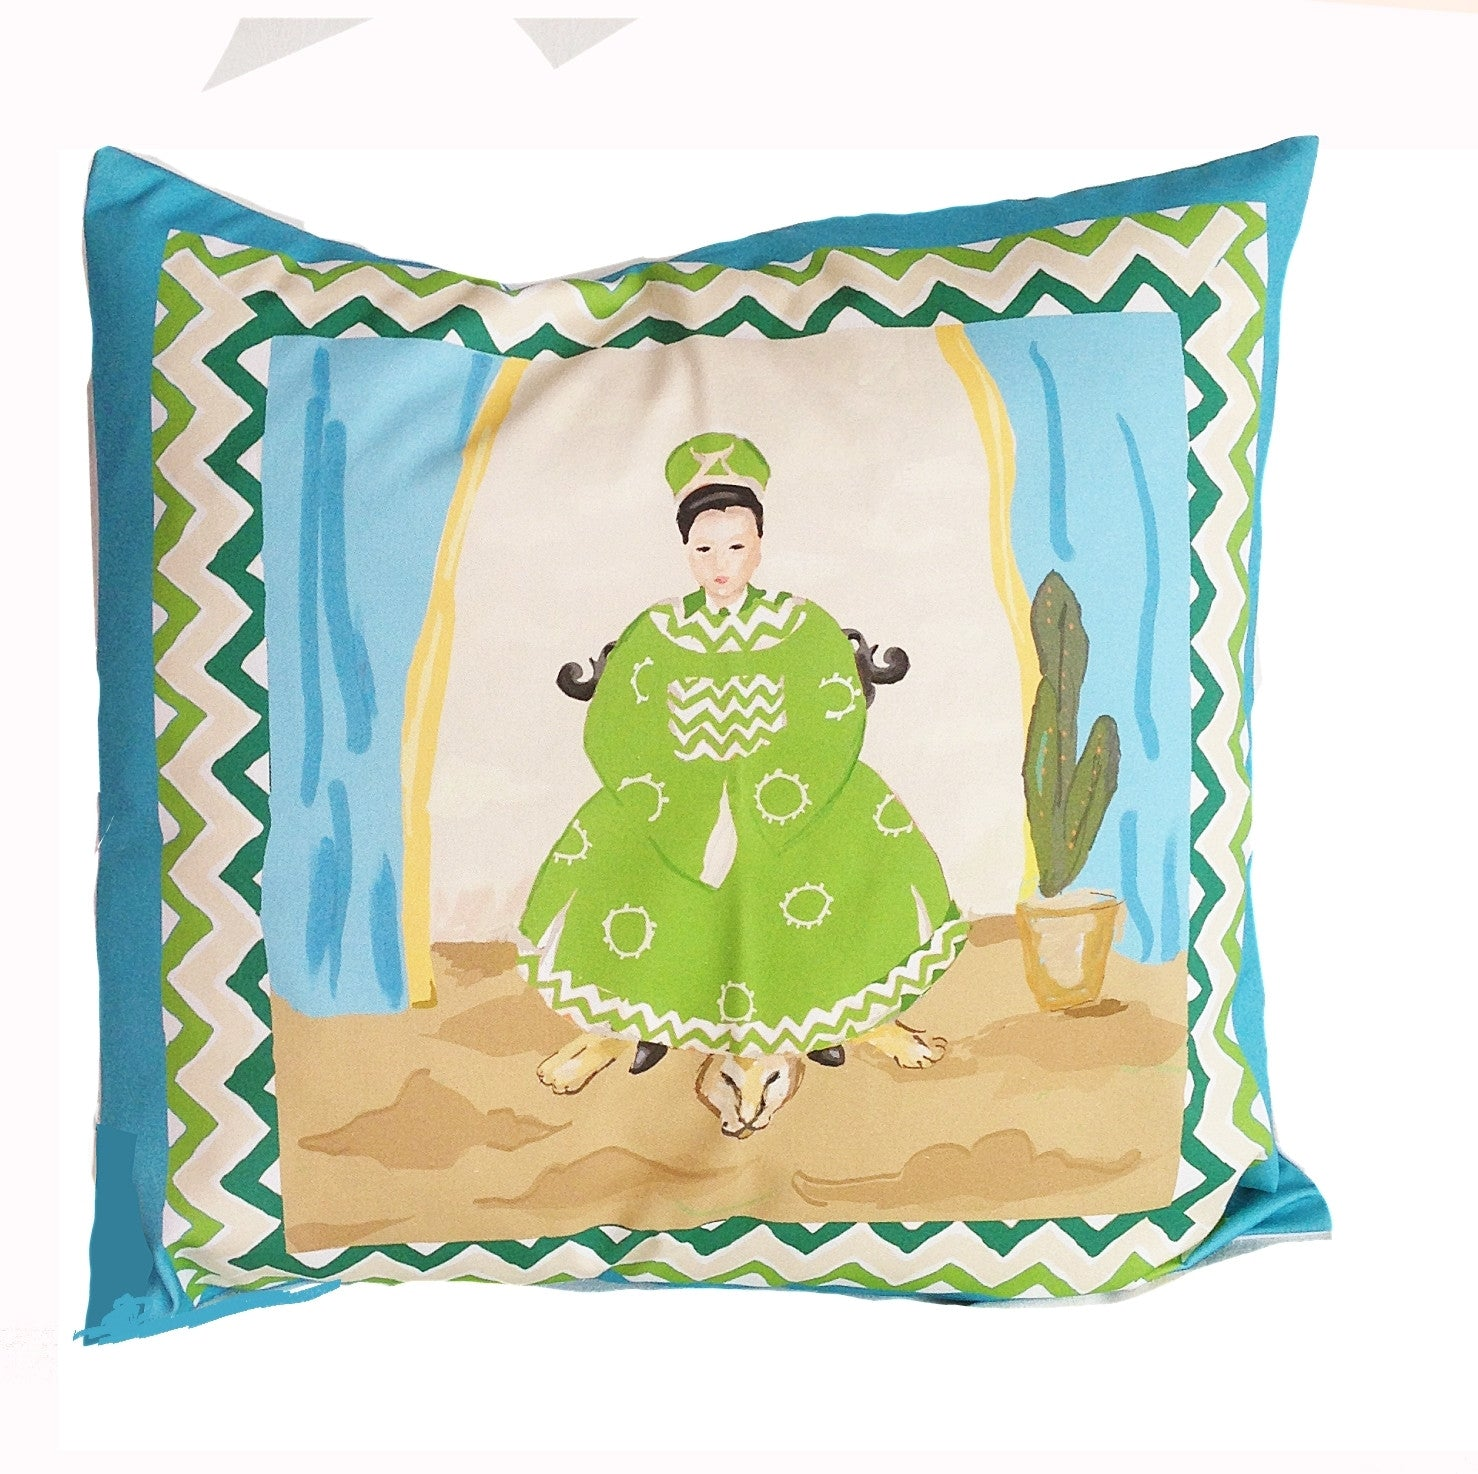 Empress Pillow in Turquoise